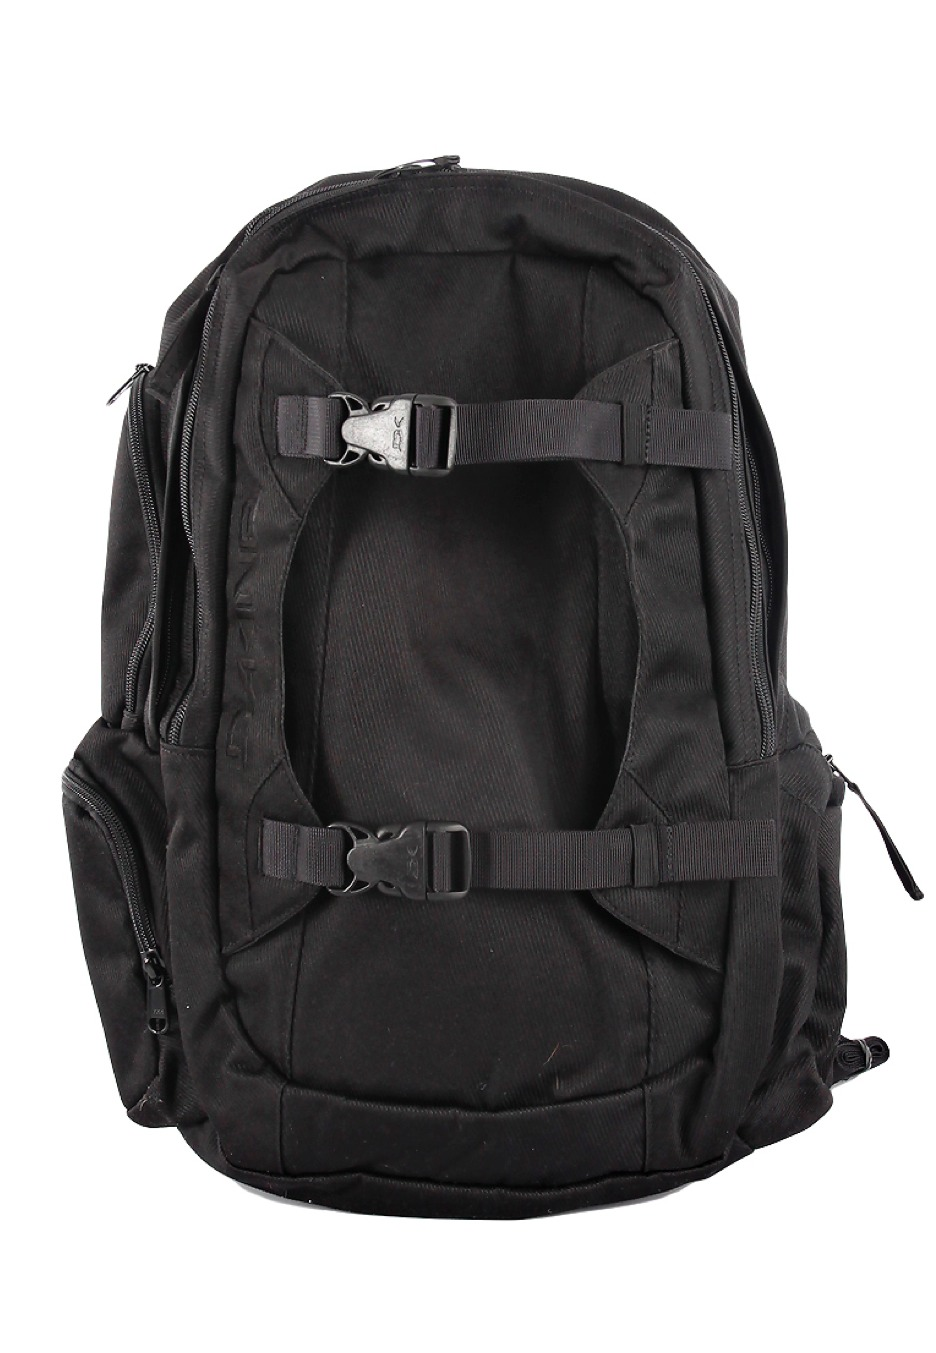 Dakine - Mission Pack - Backpack - Impericon.com Worldwide